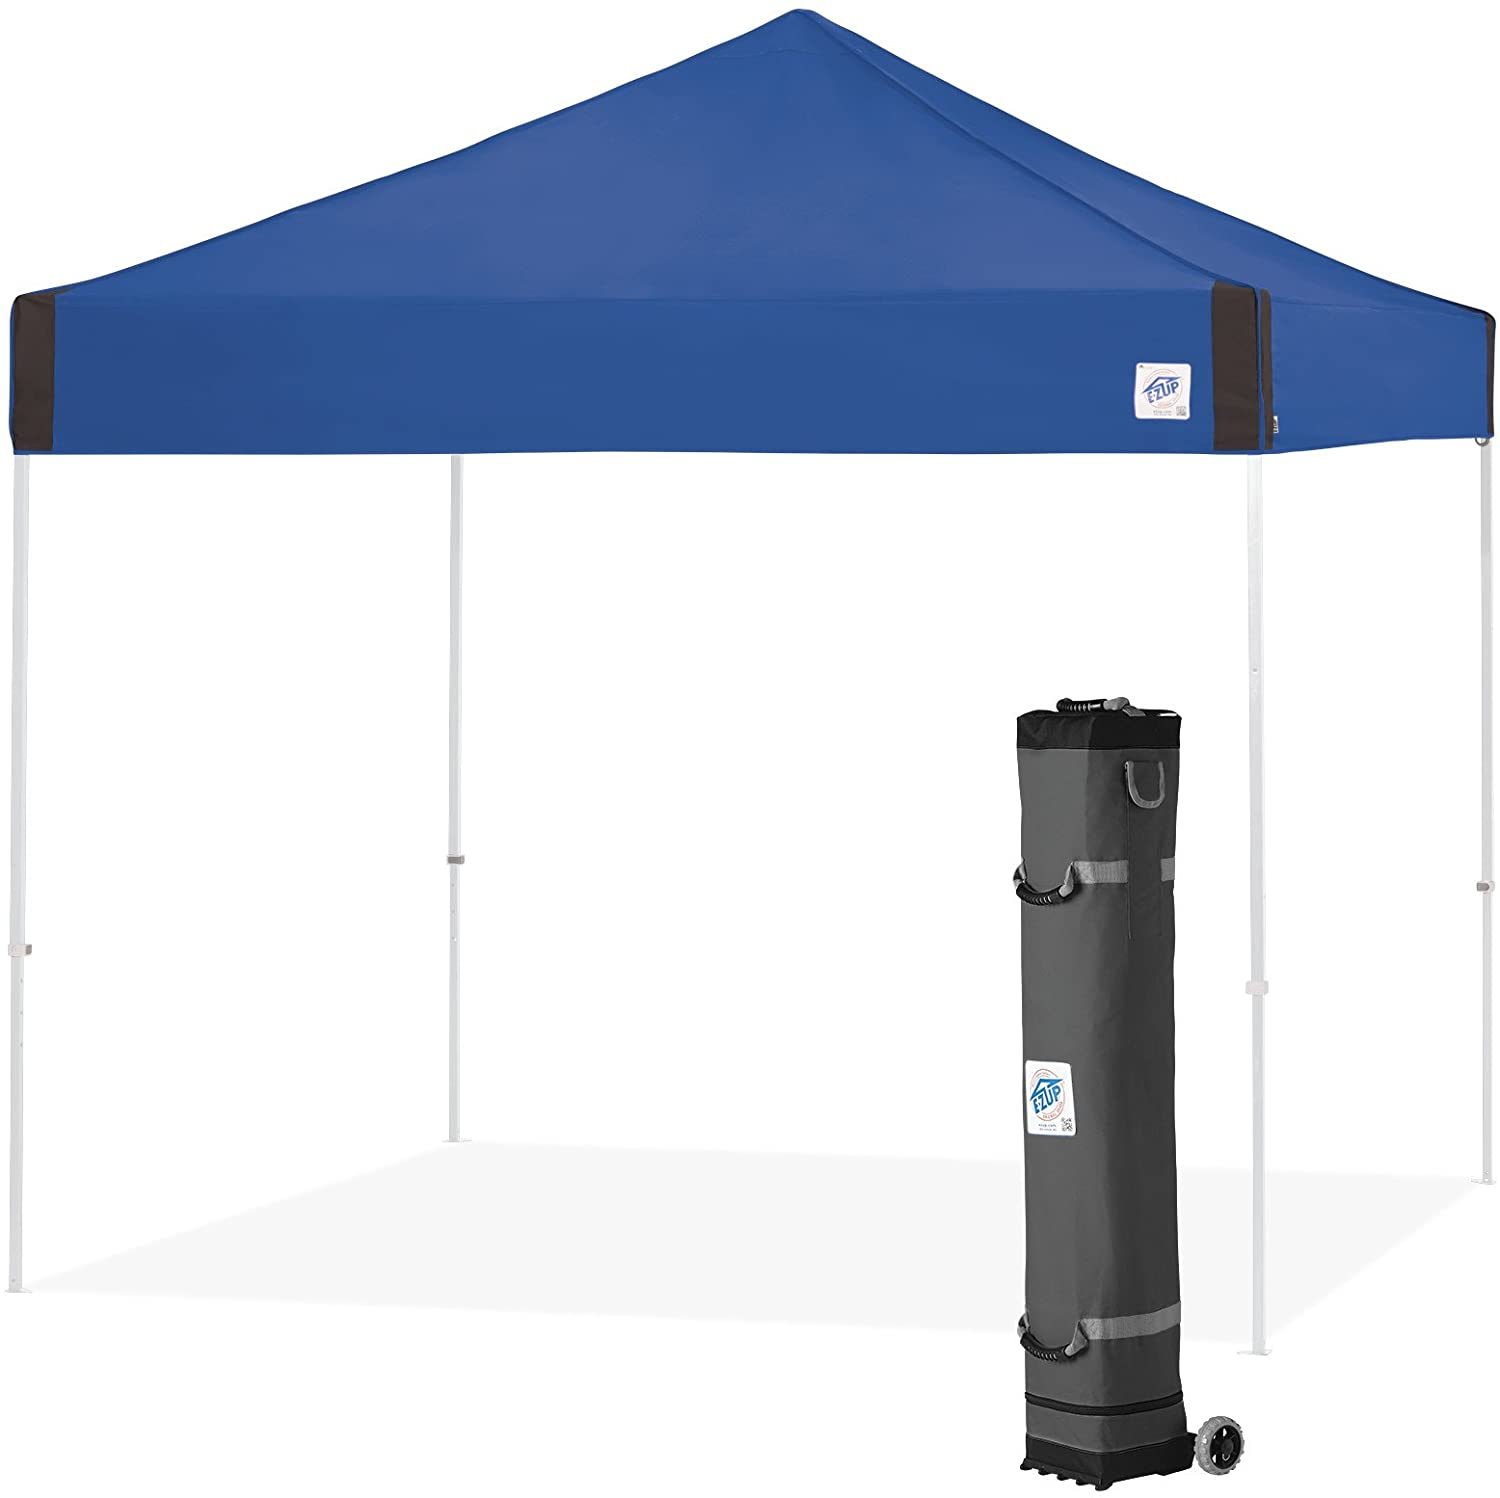 Pyramid Shelter Instant Canopy Popup Tent